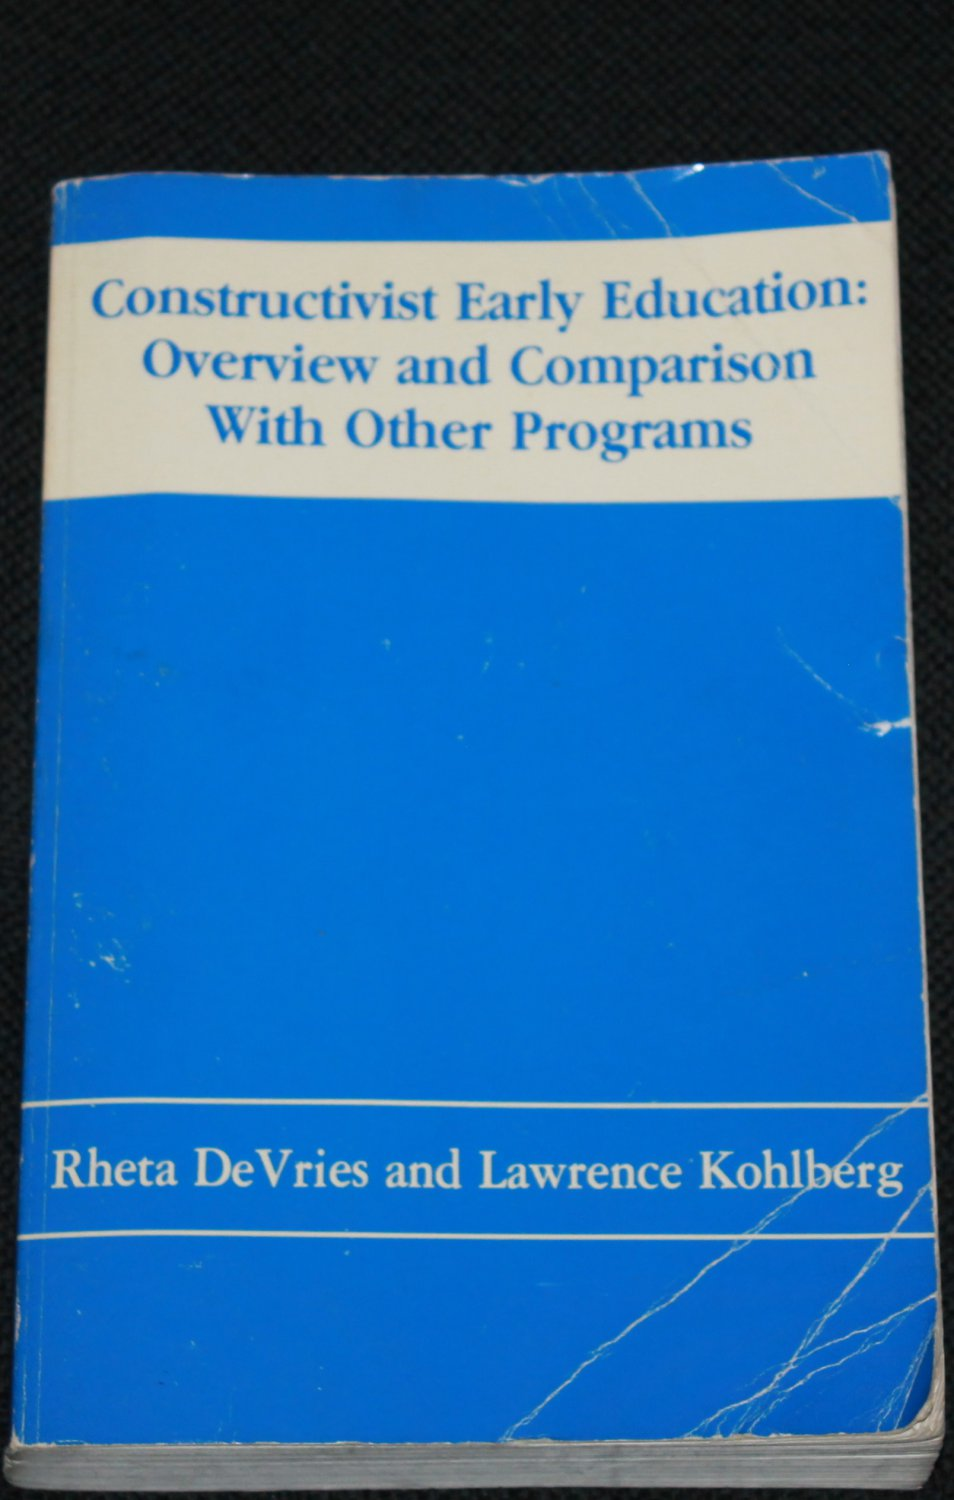 Constructivist Early Education: Overview and Comparison With Other Programs